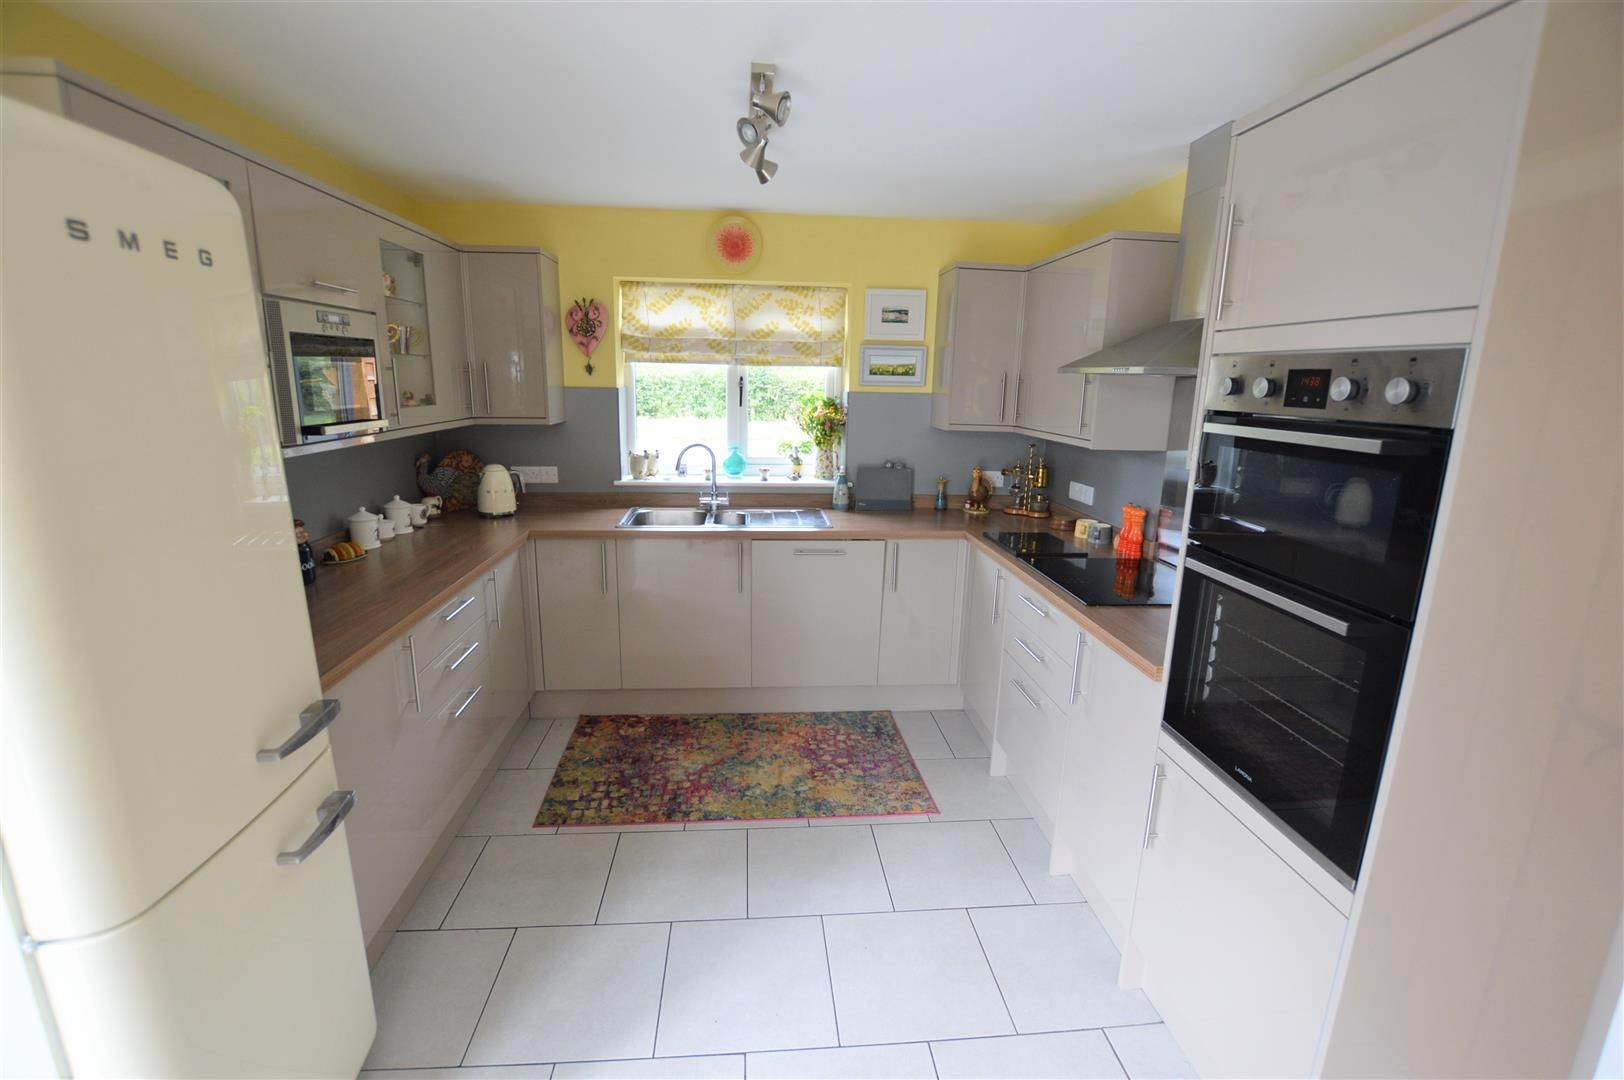 3 bed detached for sale in Kimbolton 3